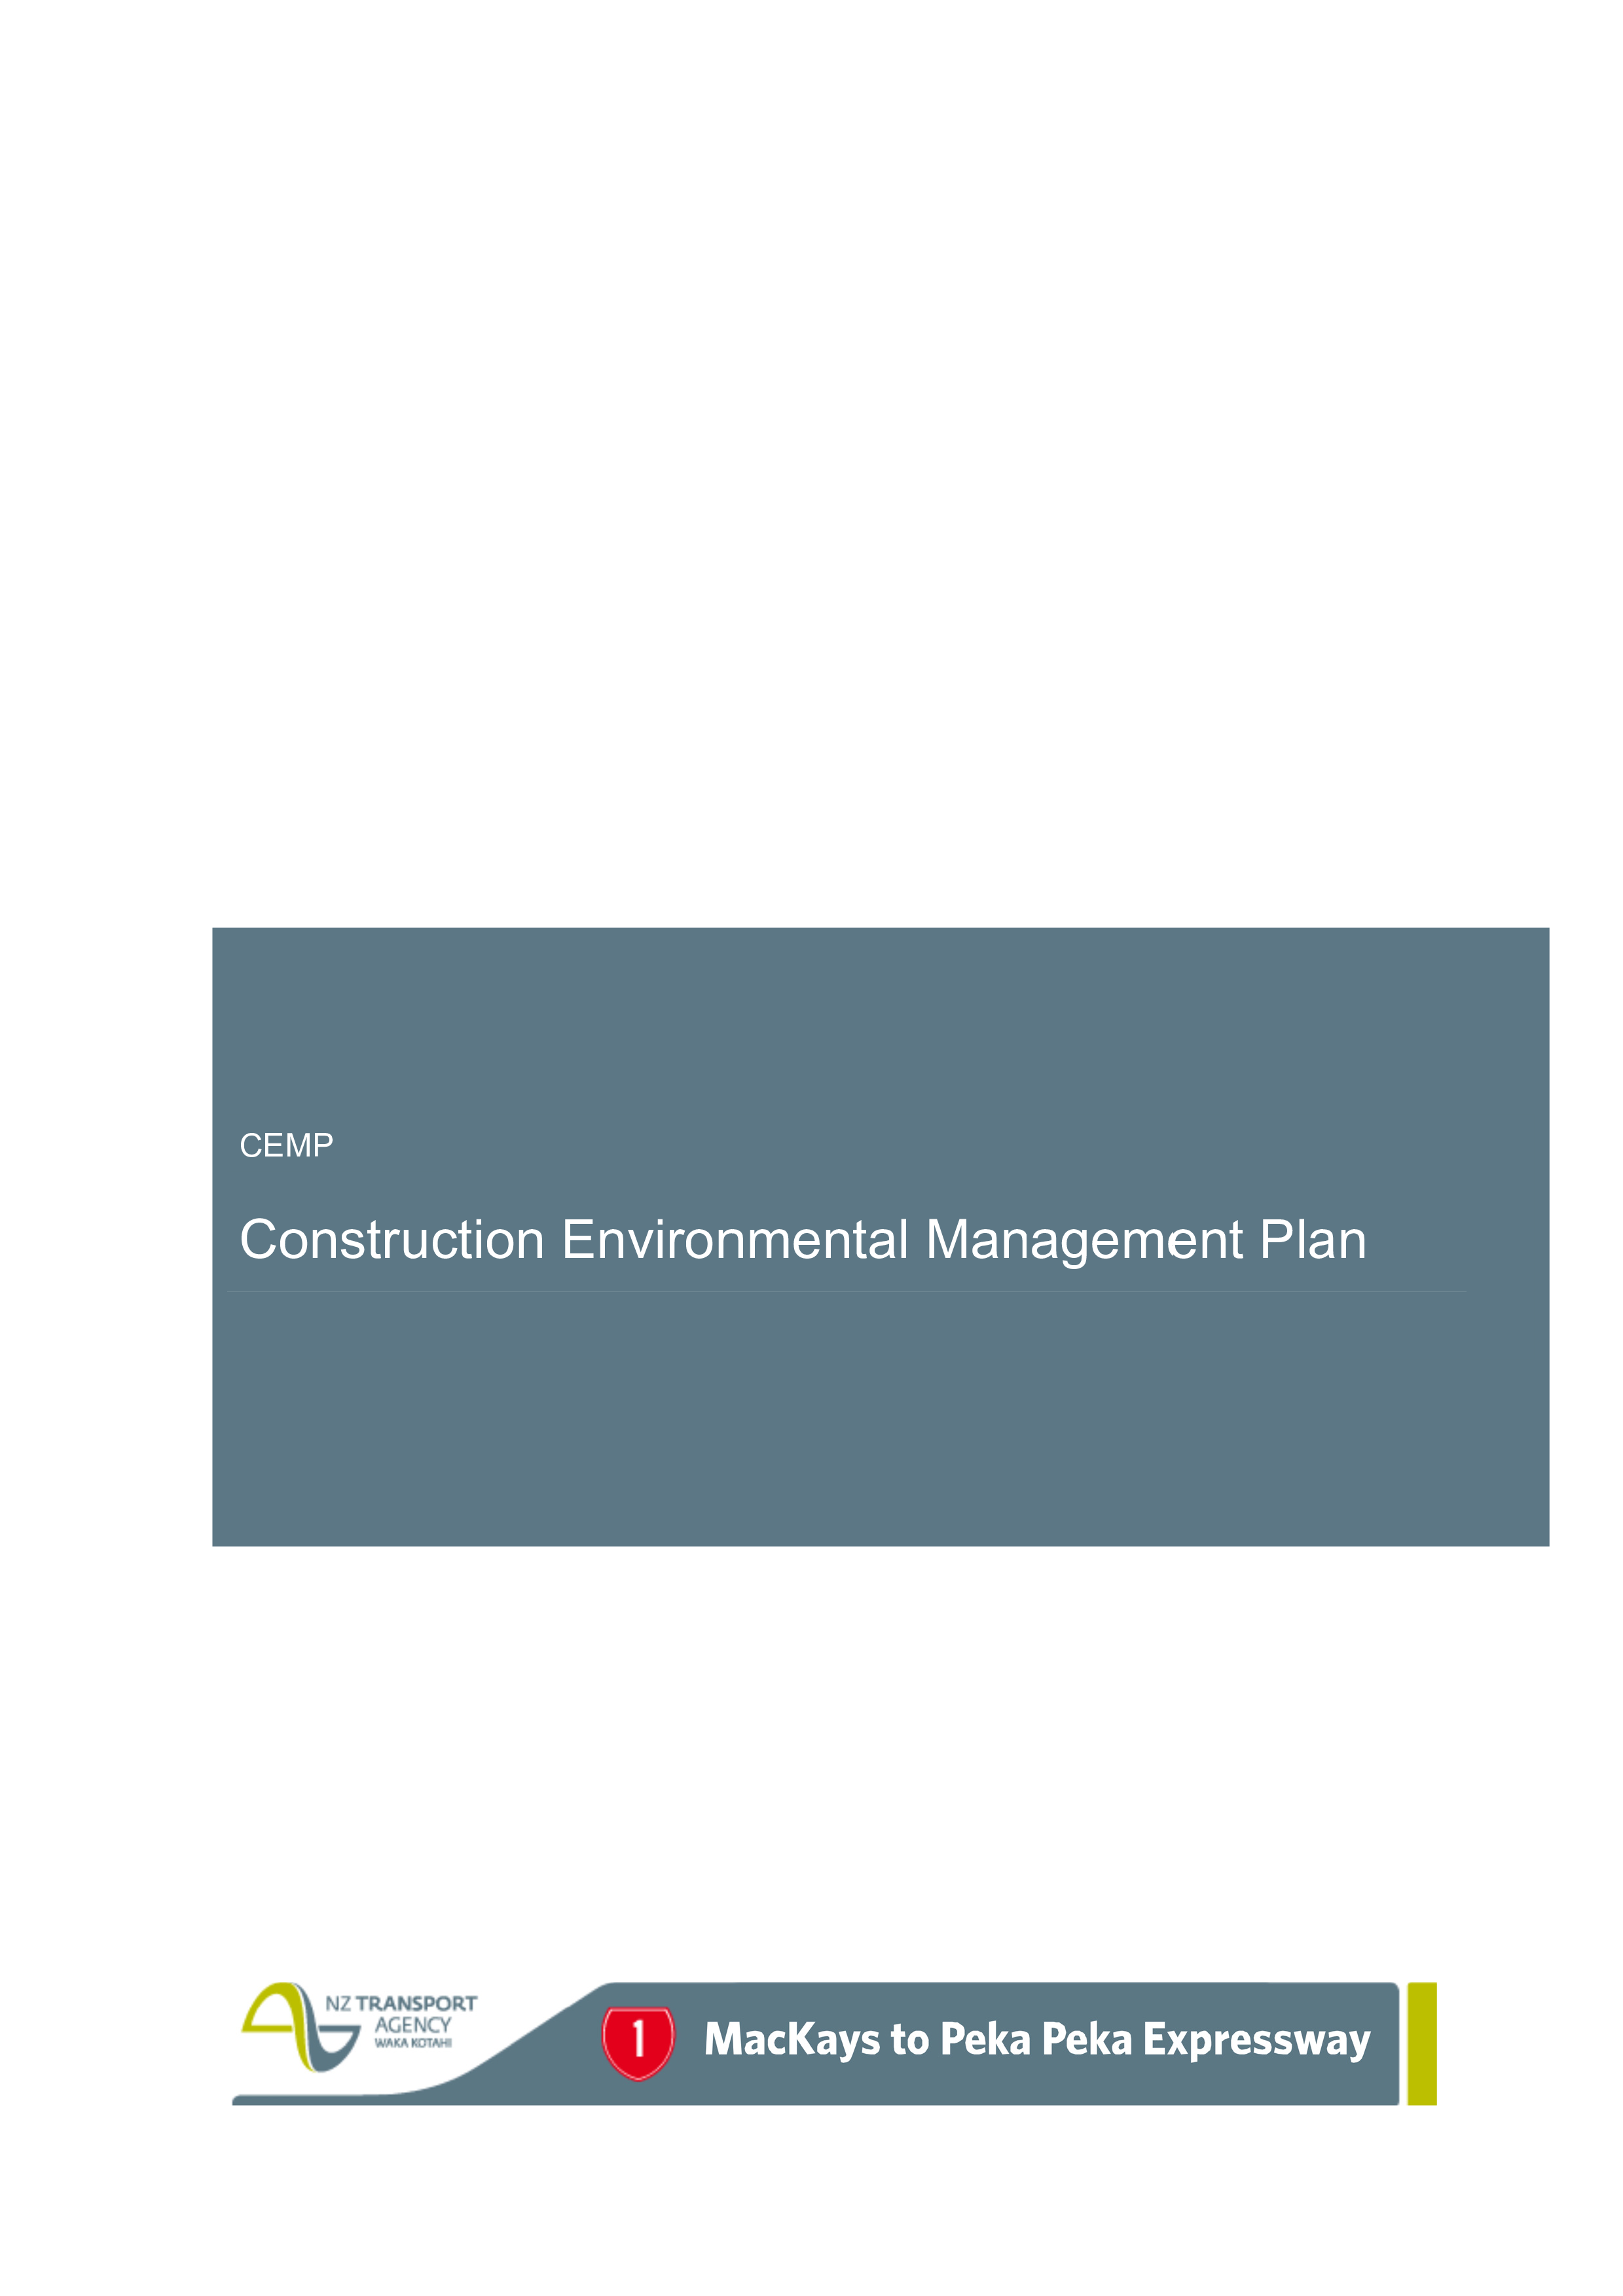 Transport management plan template images professional for Construction environmental management plan template